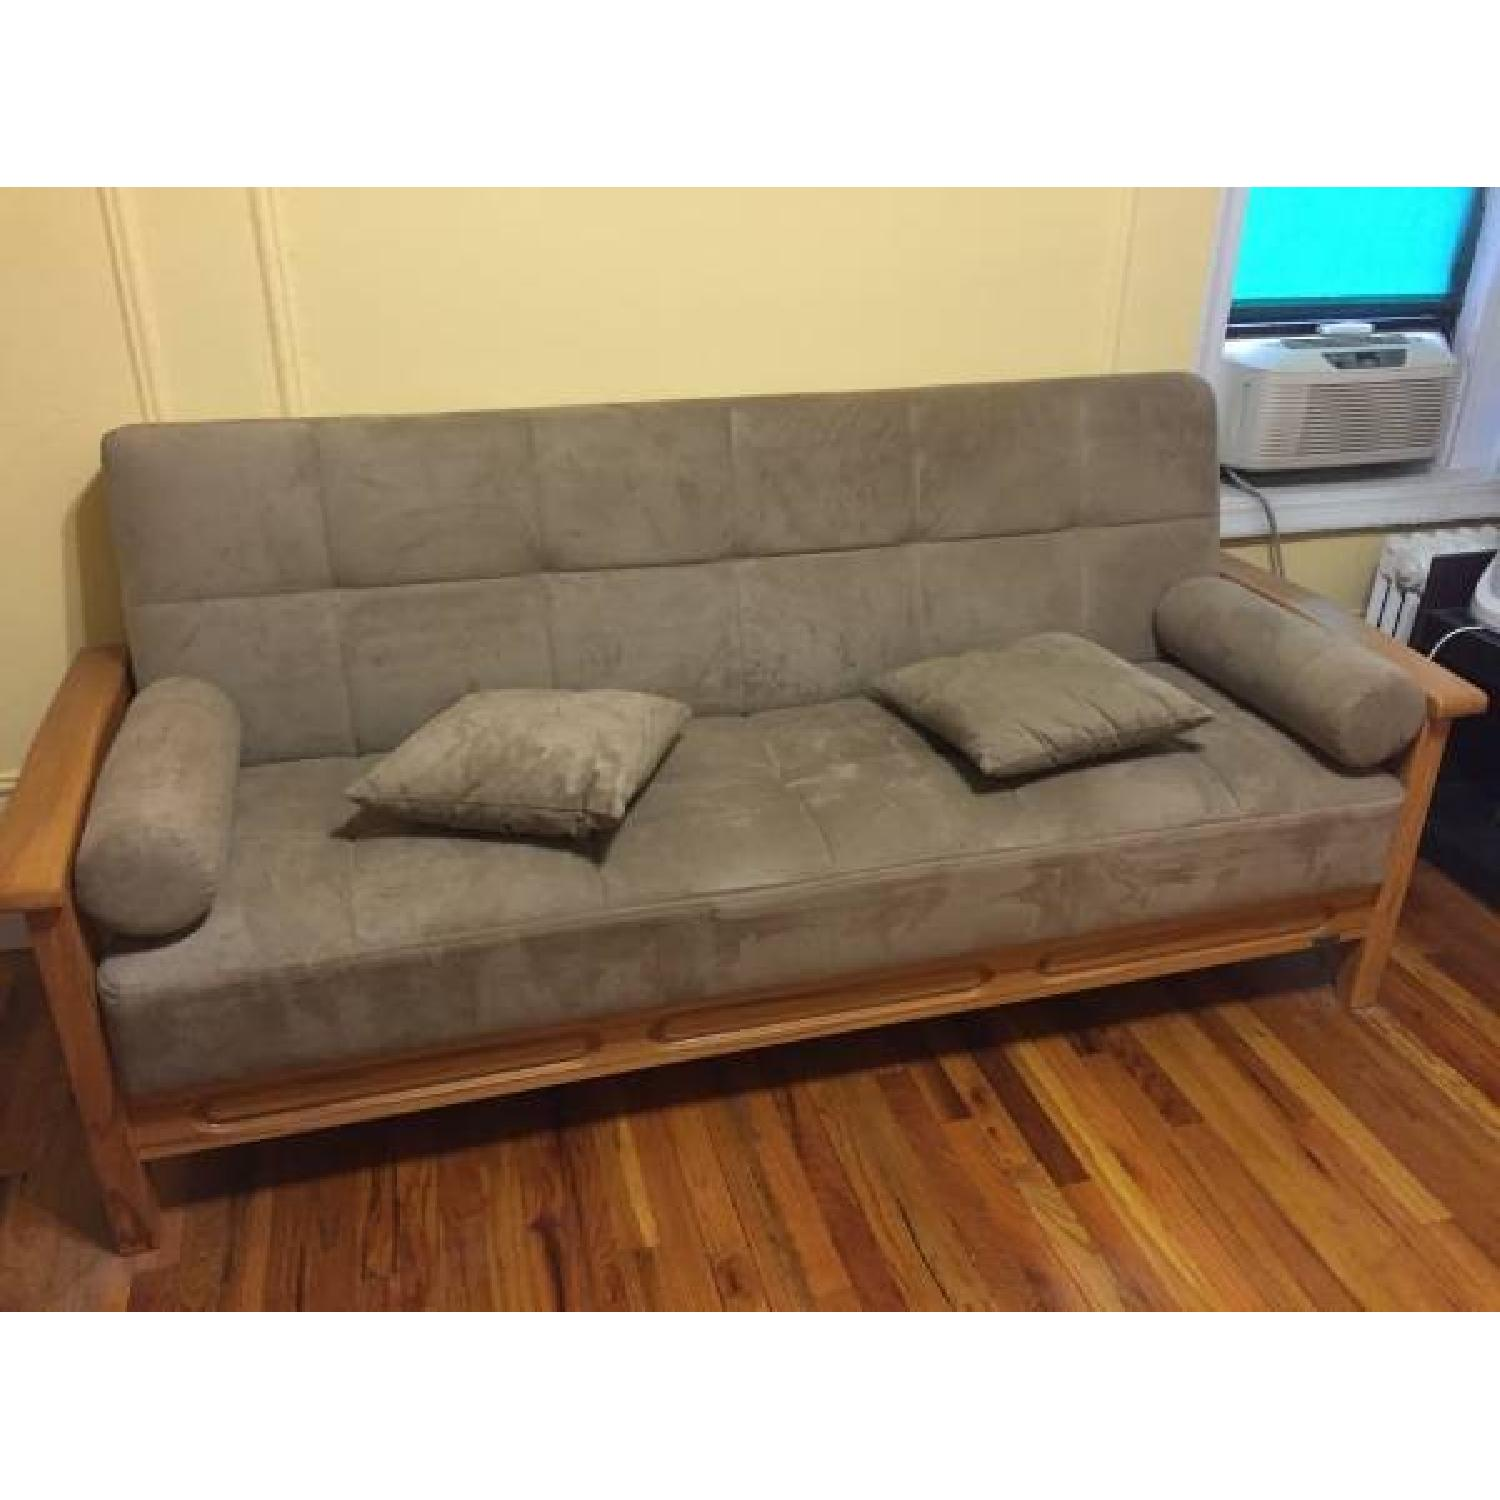 Convert-a-Couch Sofa Bed - image-2